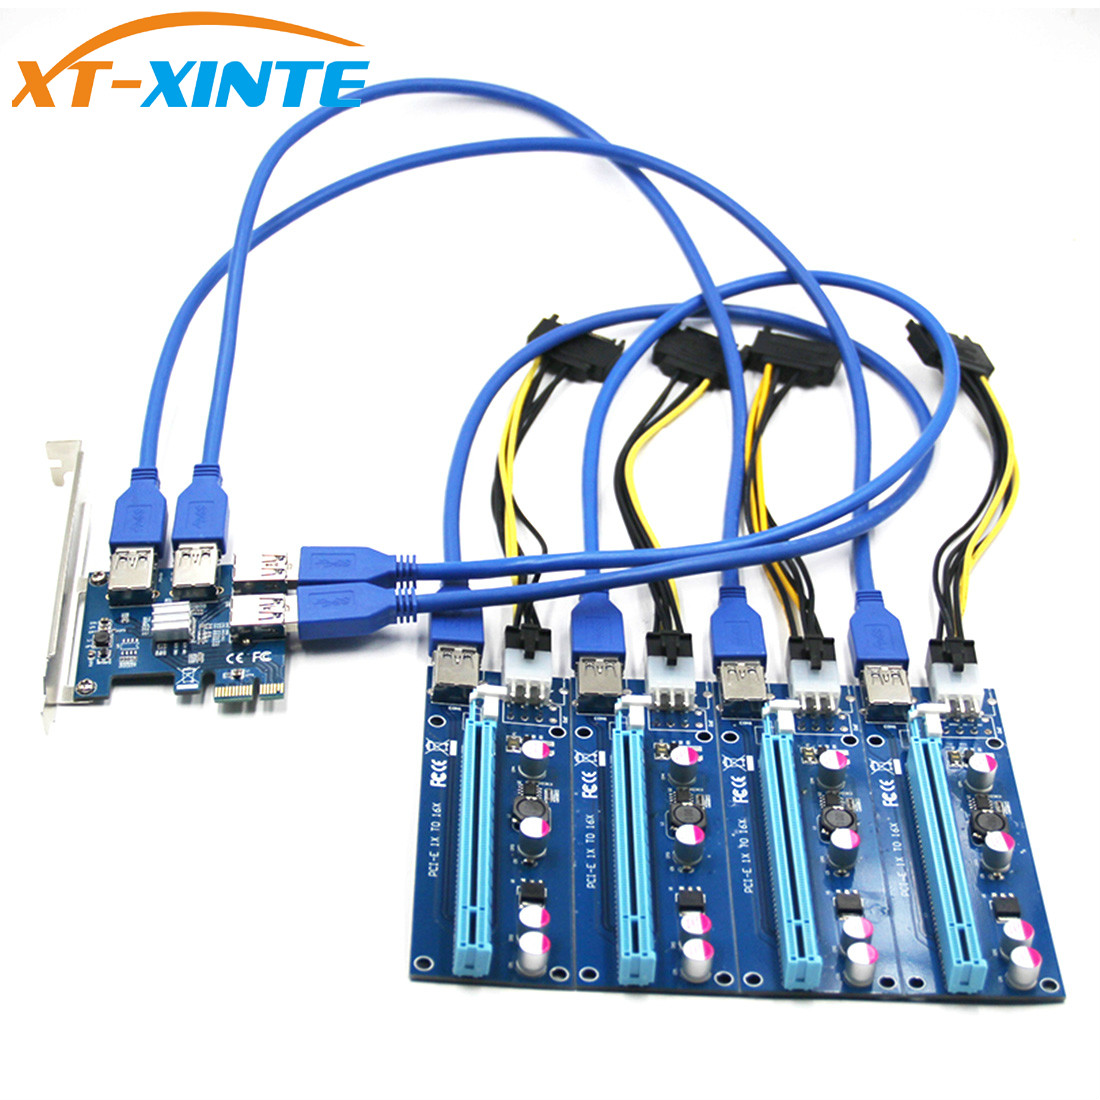 USB 3.0 PCI-E Express 1x to 16x Extender Riser Card Adapter Pcie 1 to 4 USB Convertor Graphics Video card for Miner BTC Litcoin цена и фото